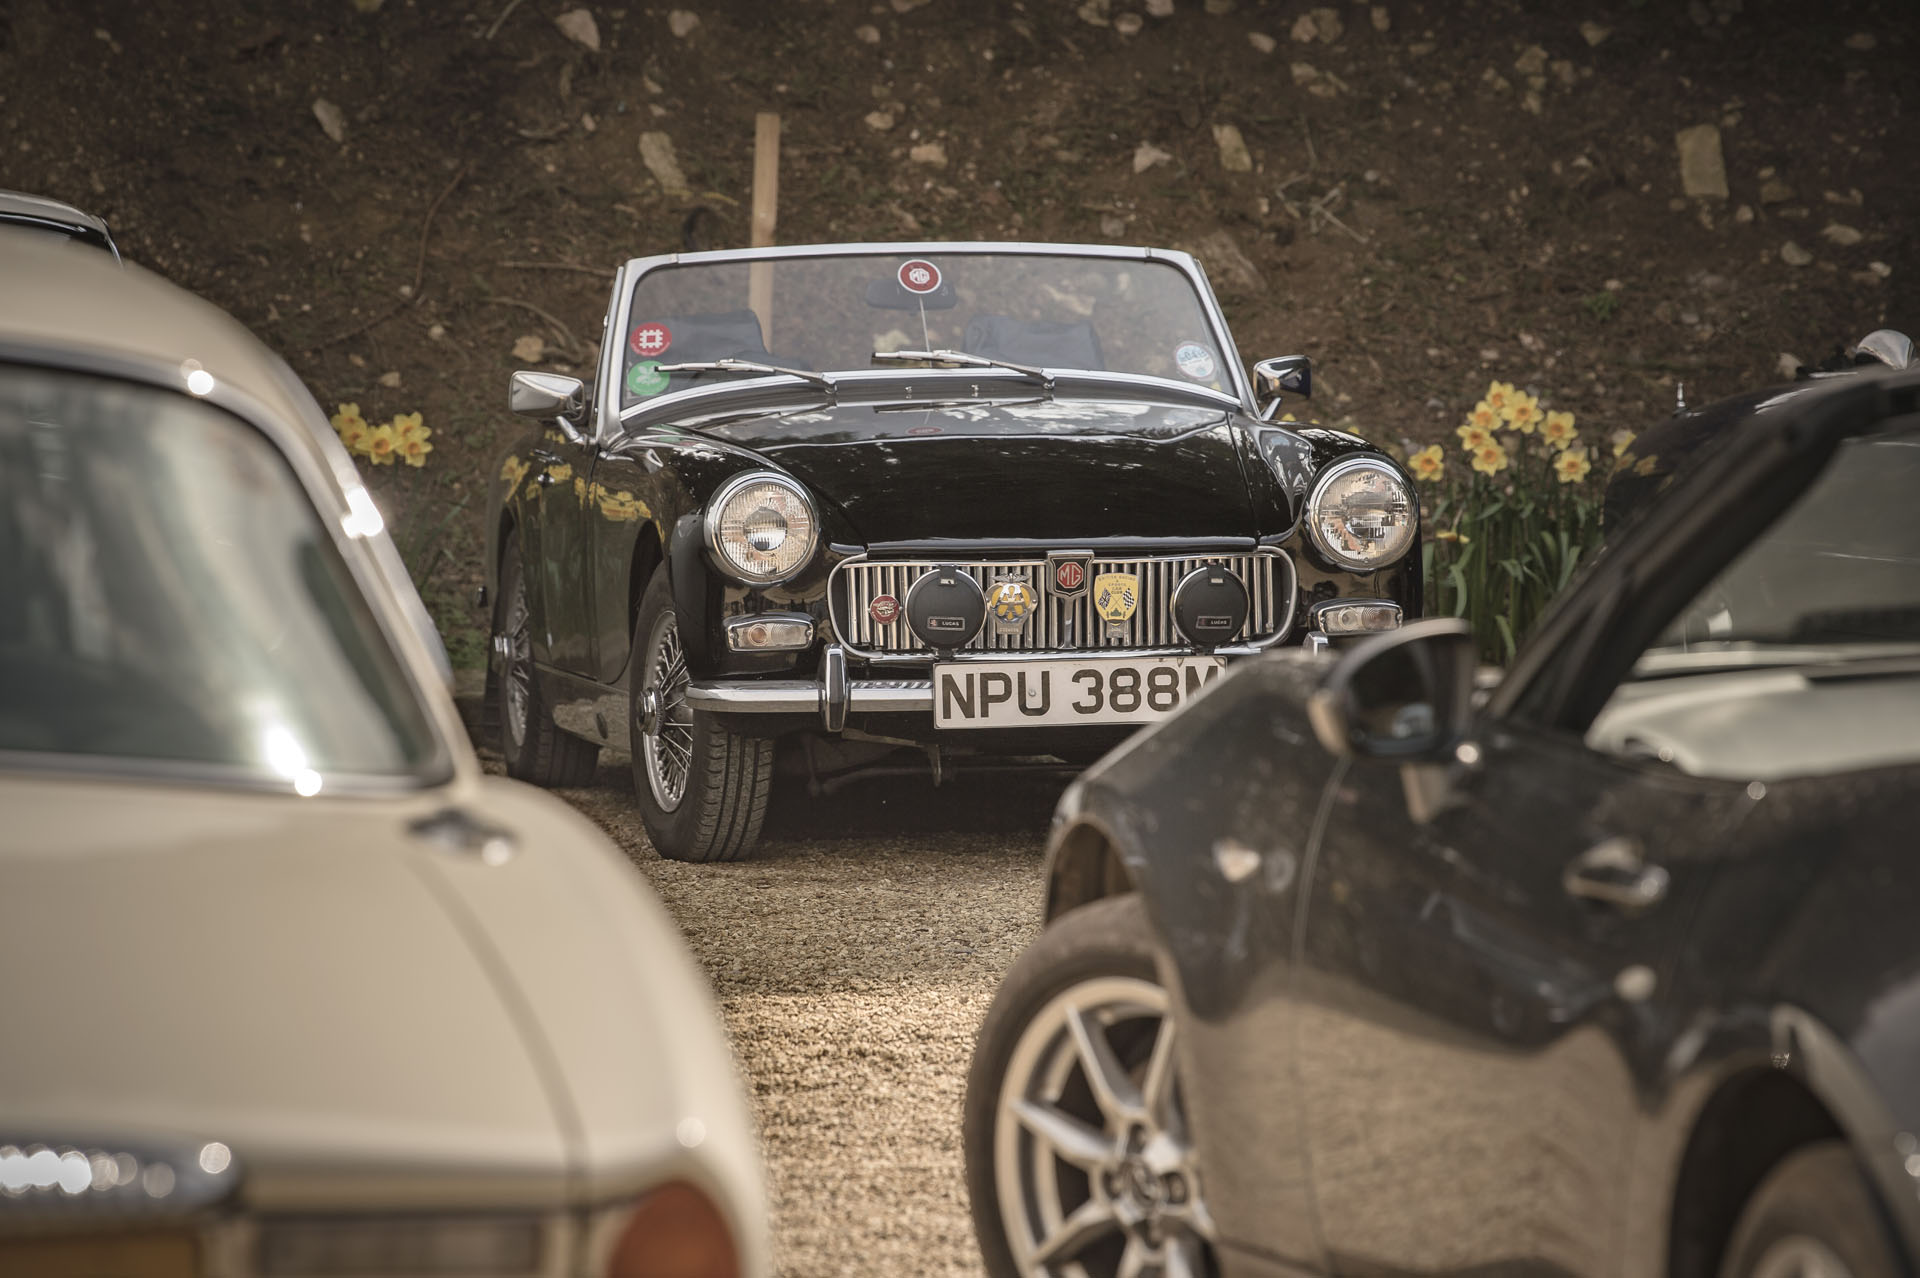 Black MG Midget